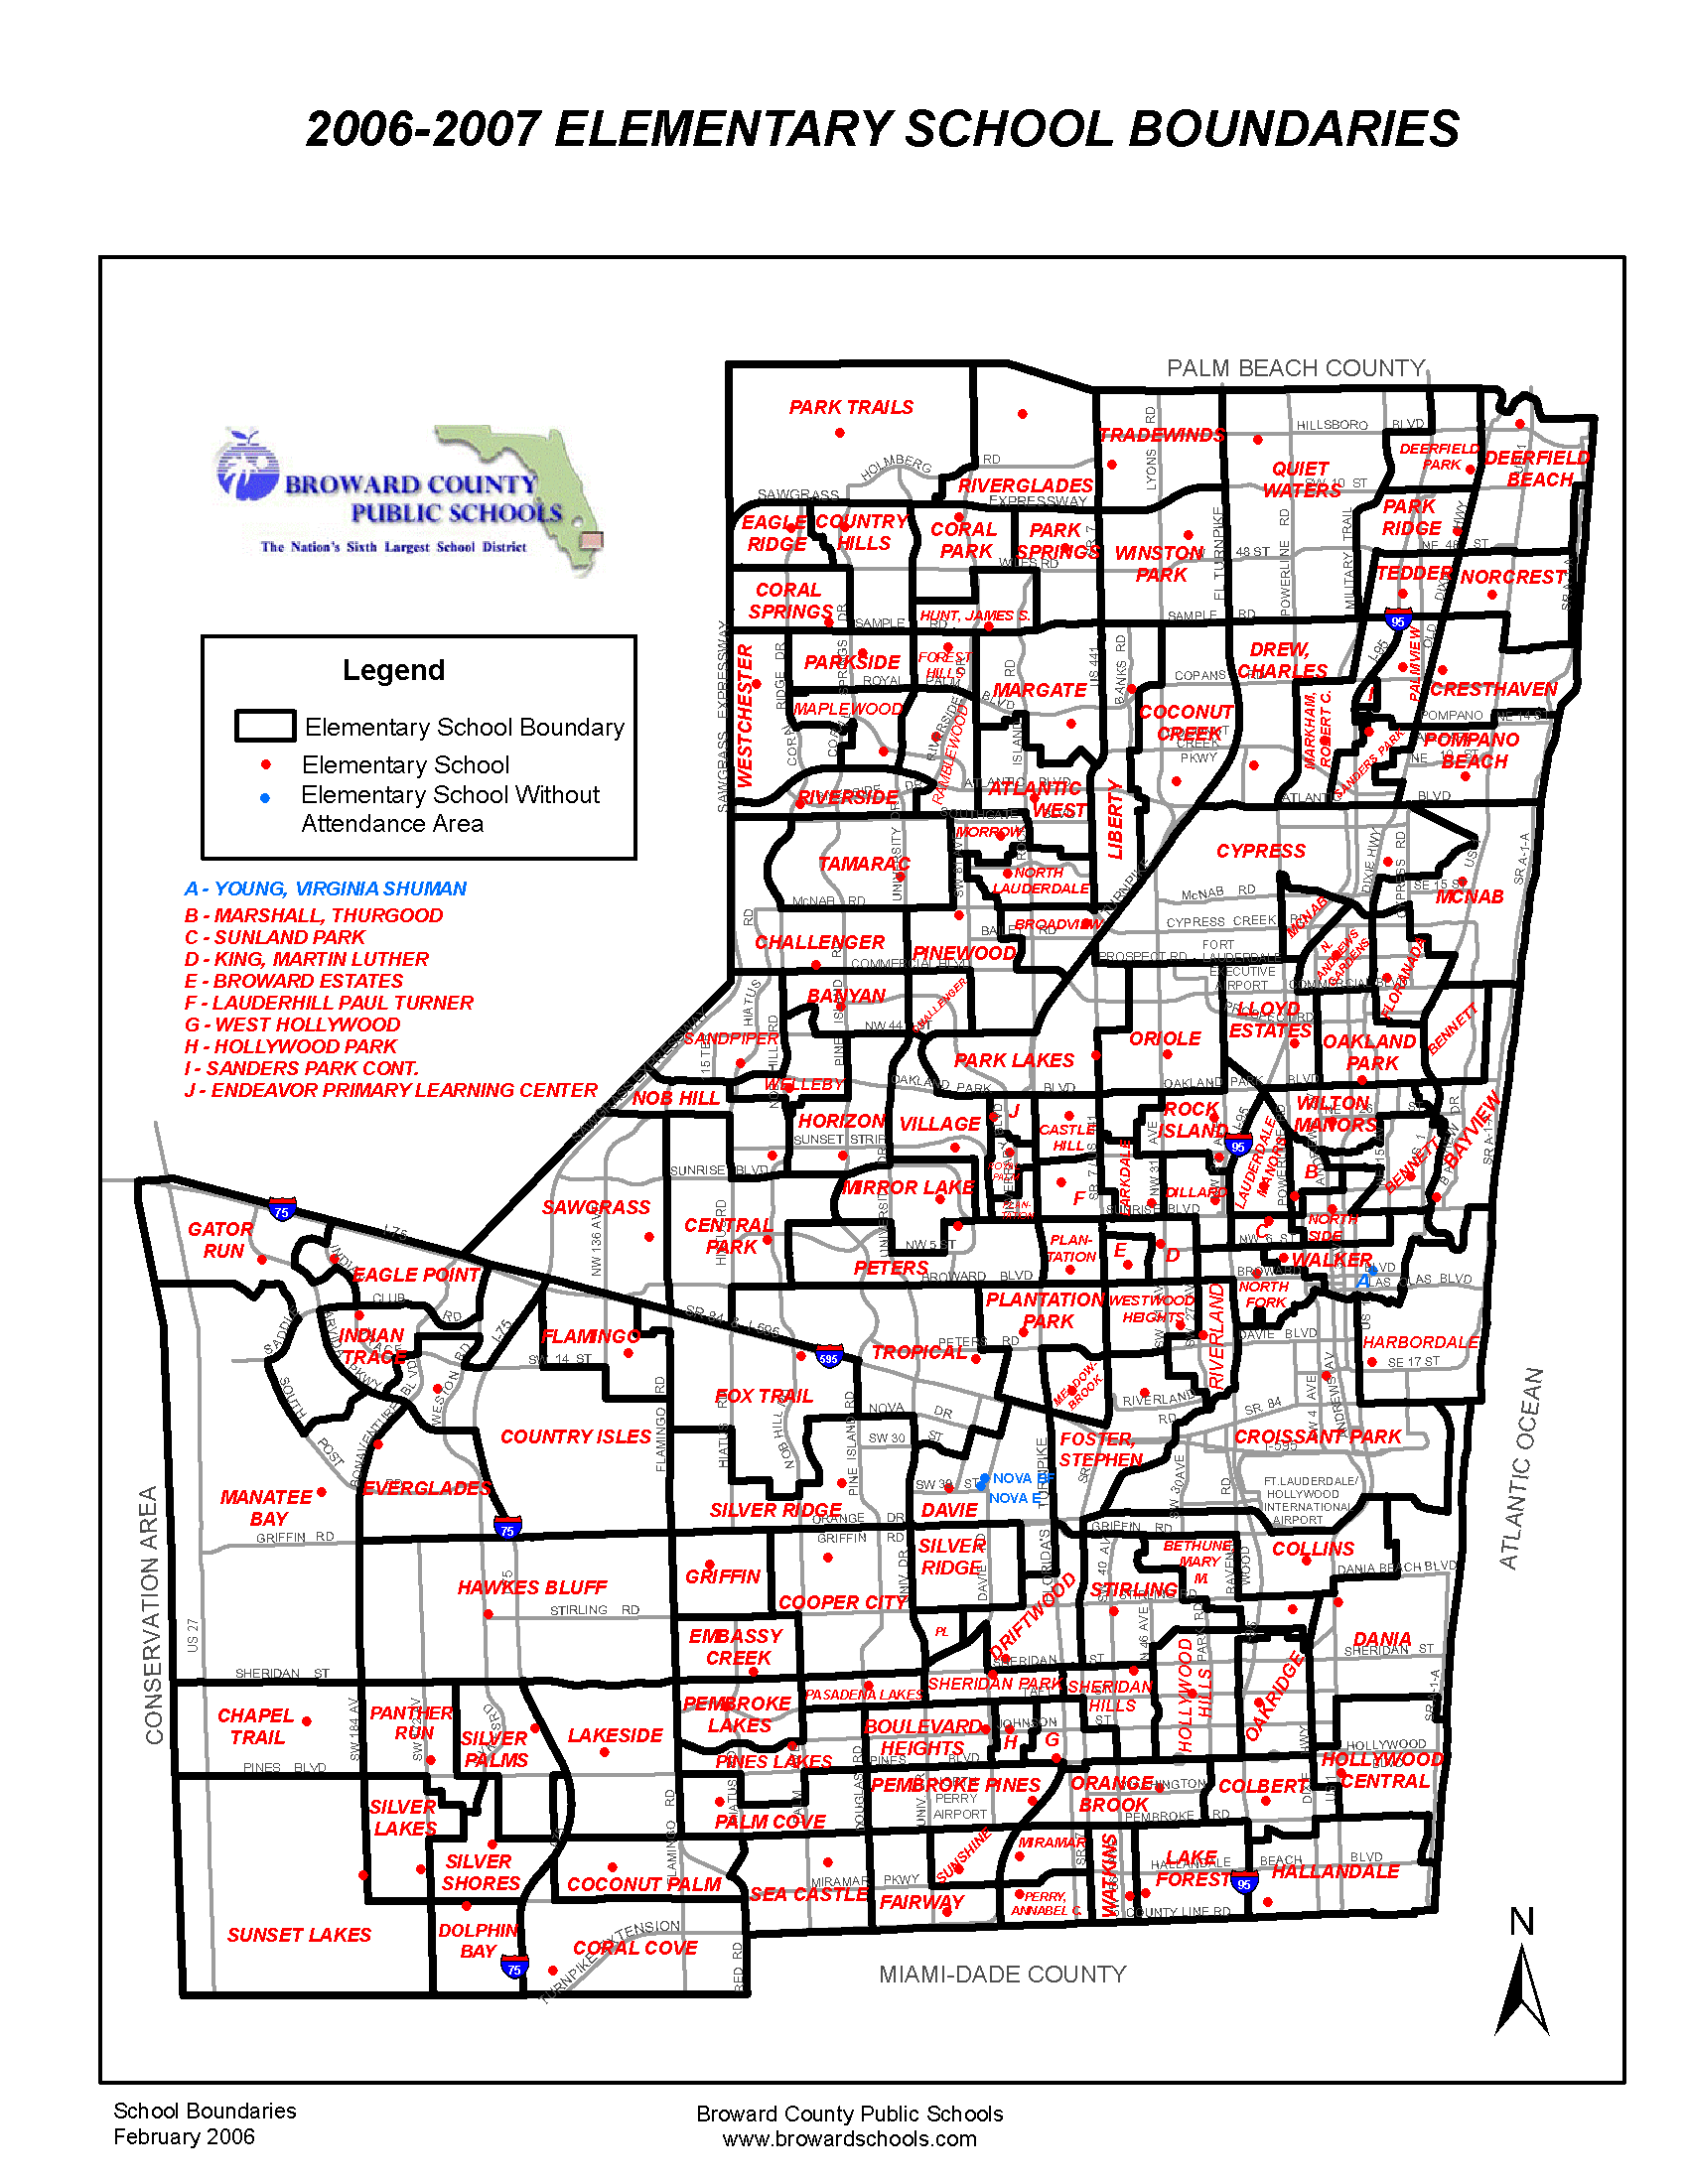 Maps and Data / By School Level